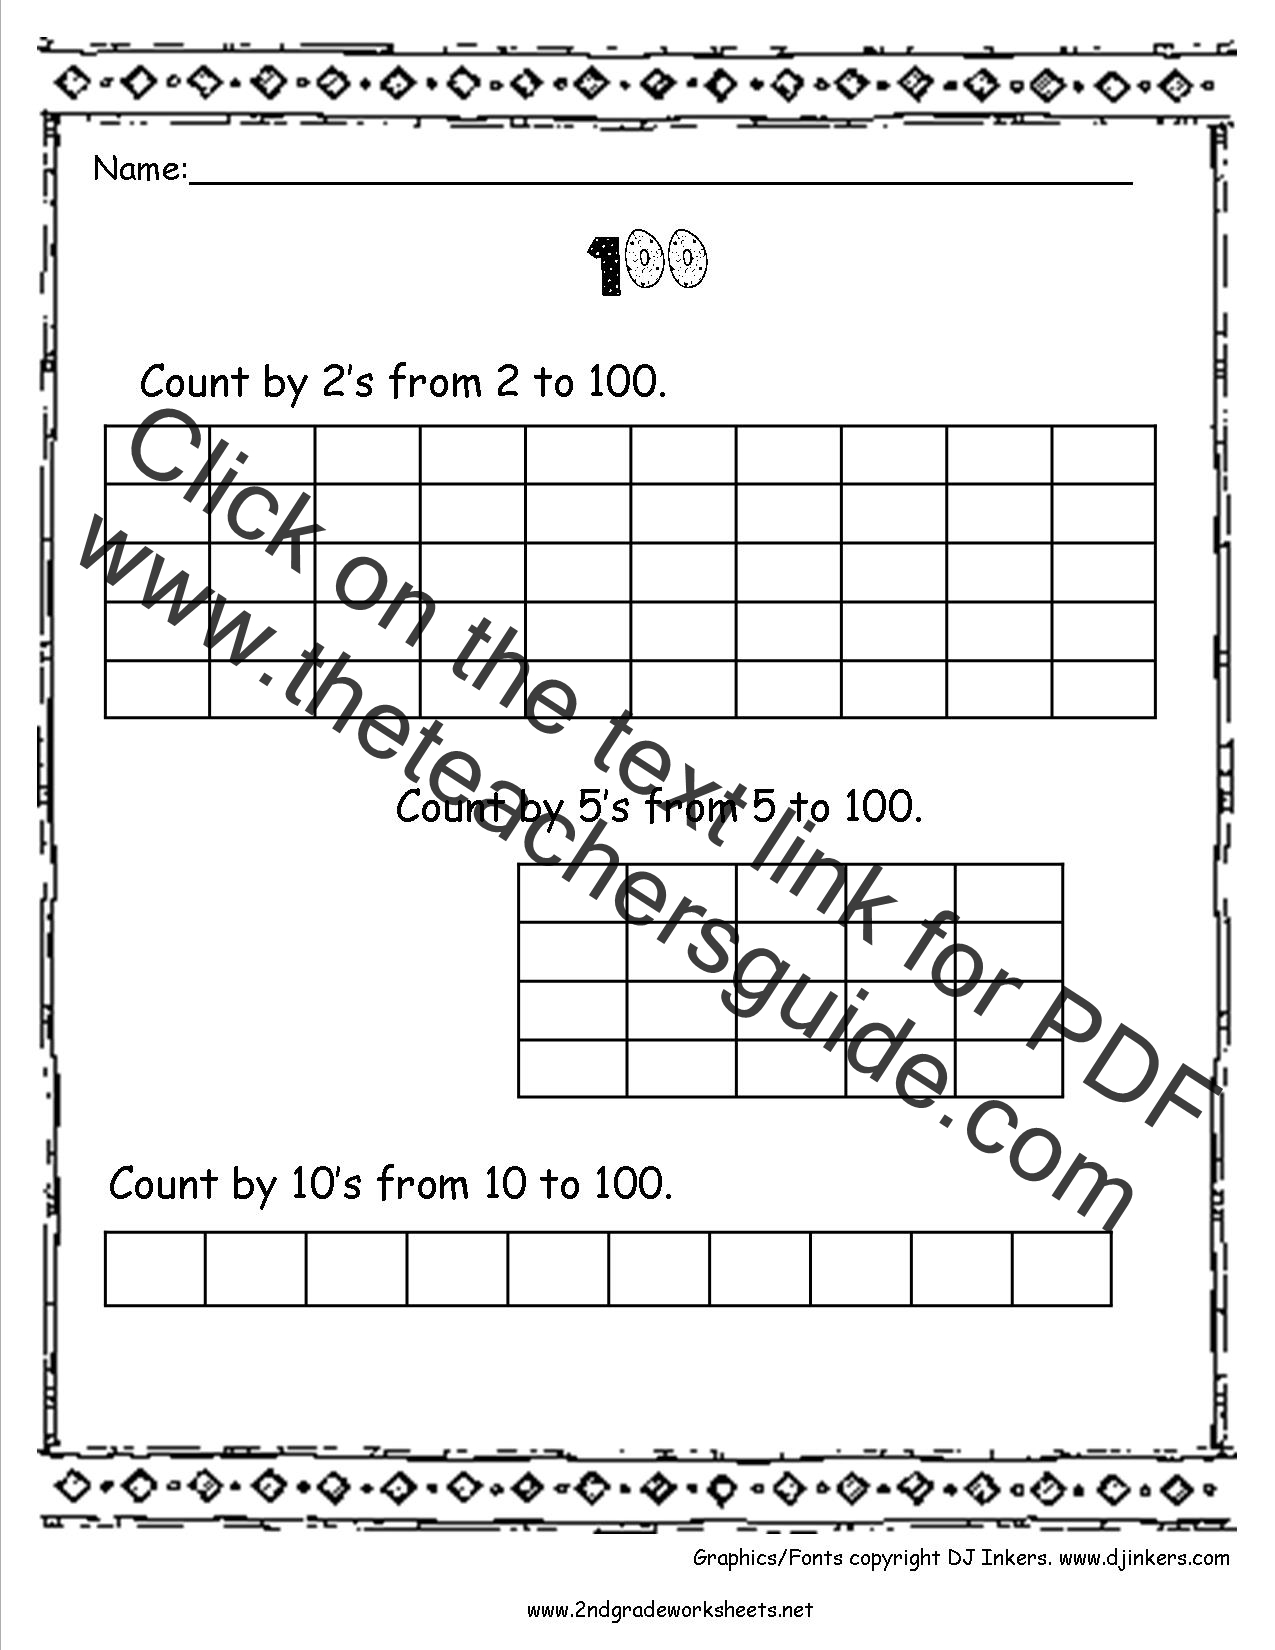 worksheet Counting To 100 Worksheet counting to 100 worksheets abitlikethis 10 common core state standards fun students skip count 100